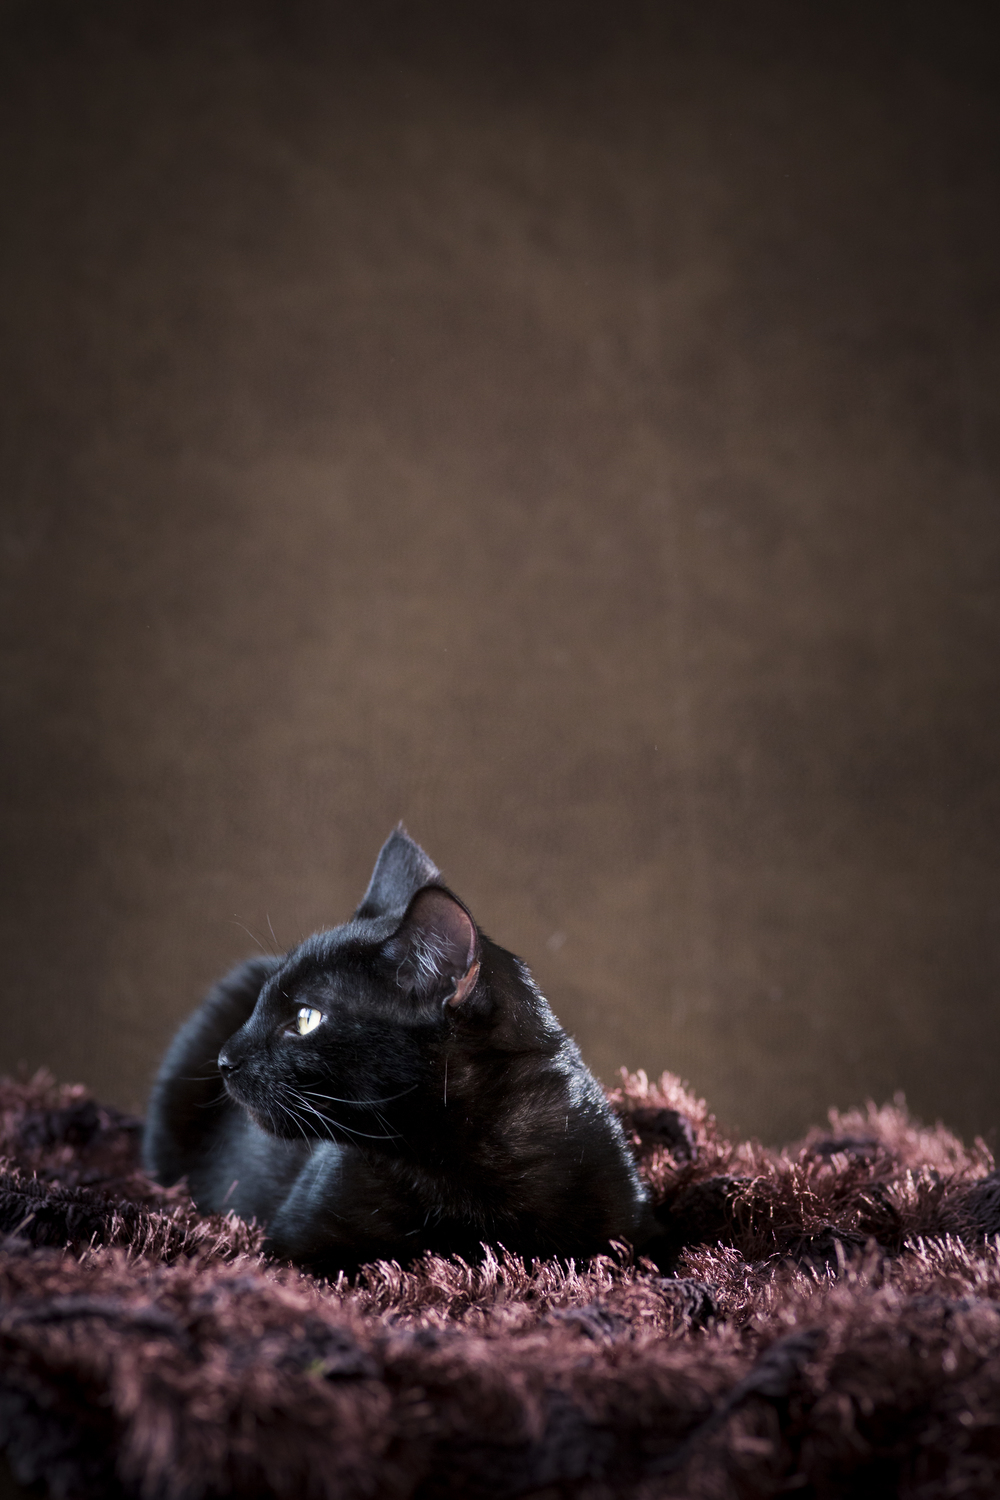 33 black cat pet photography studio session on brown fur rug with leather background.jpg